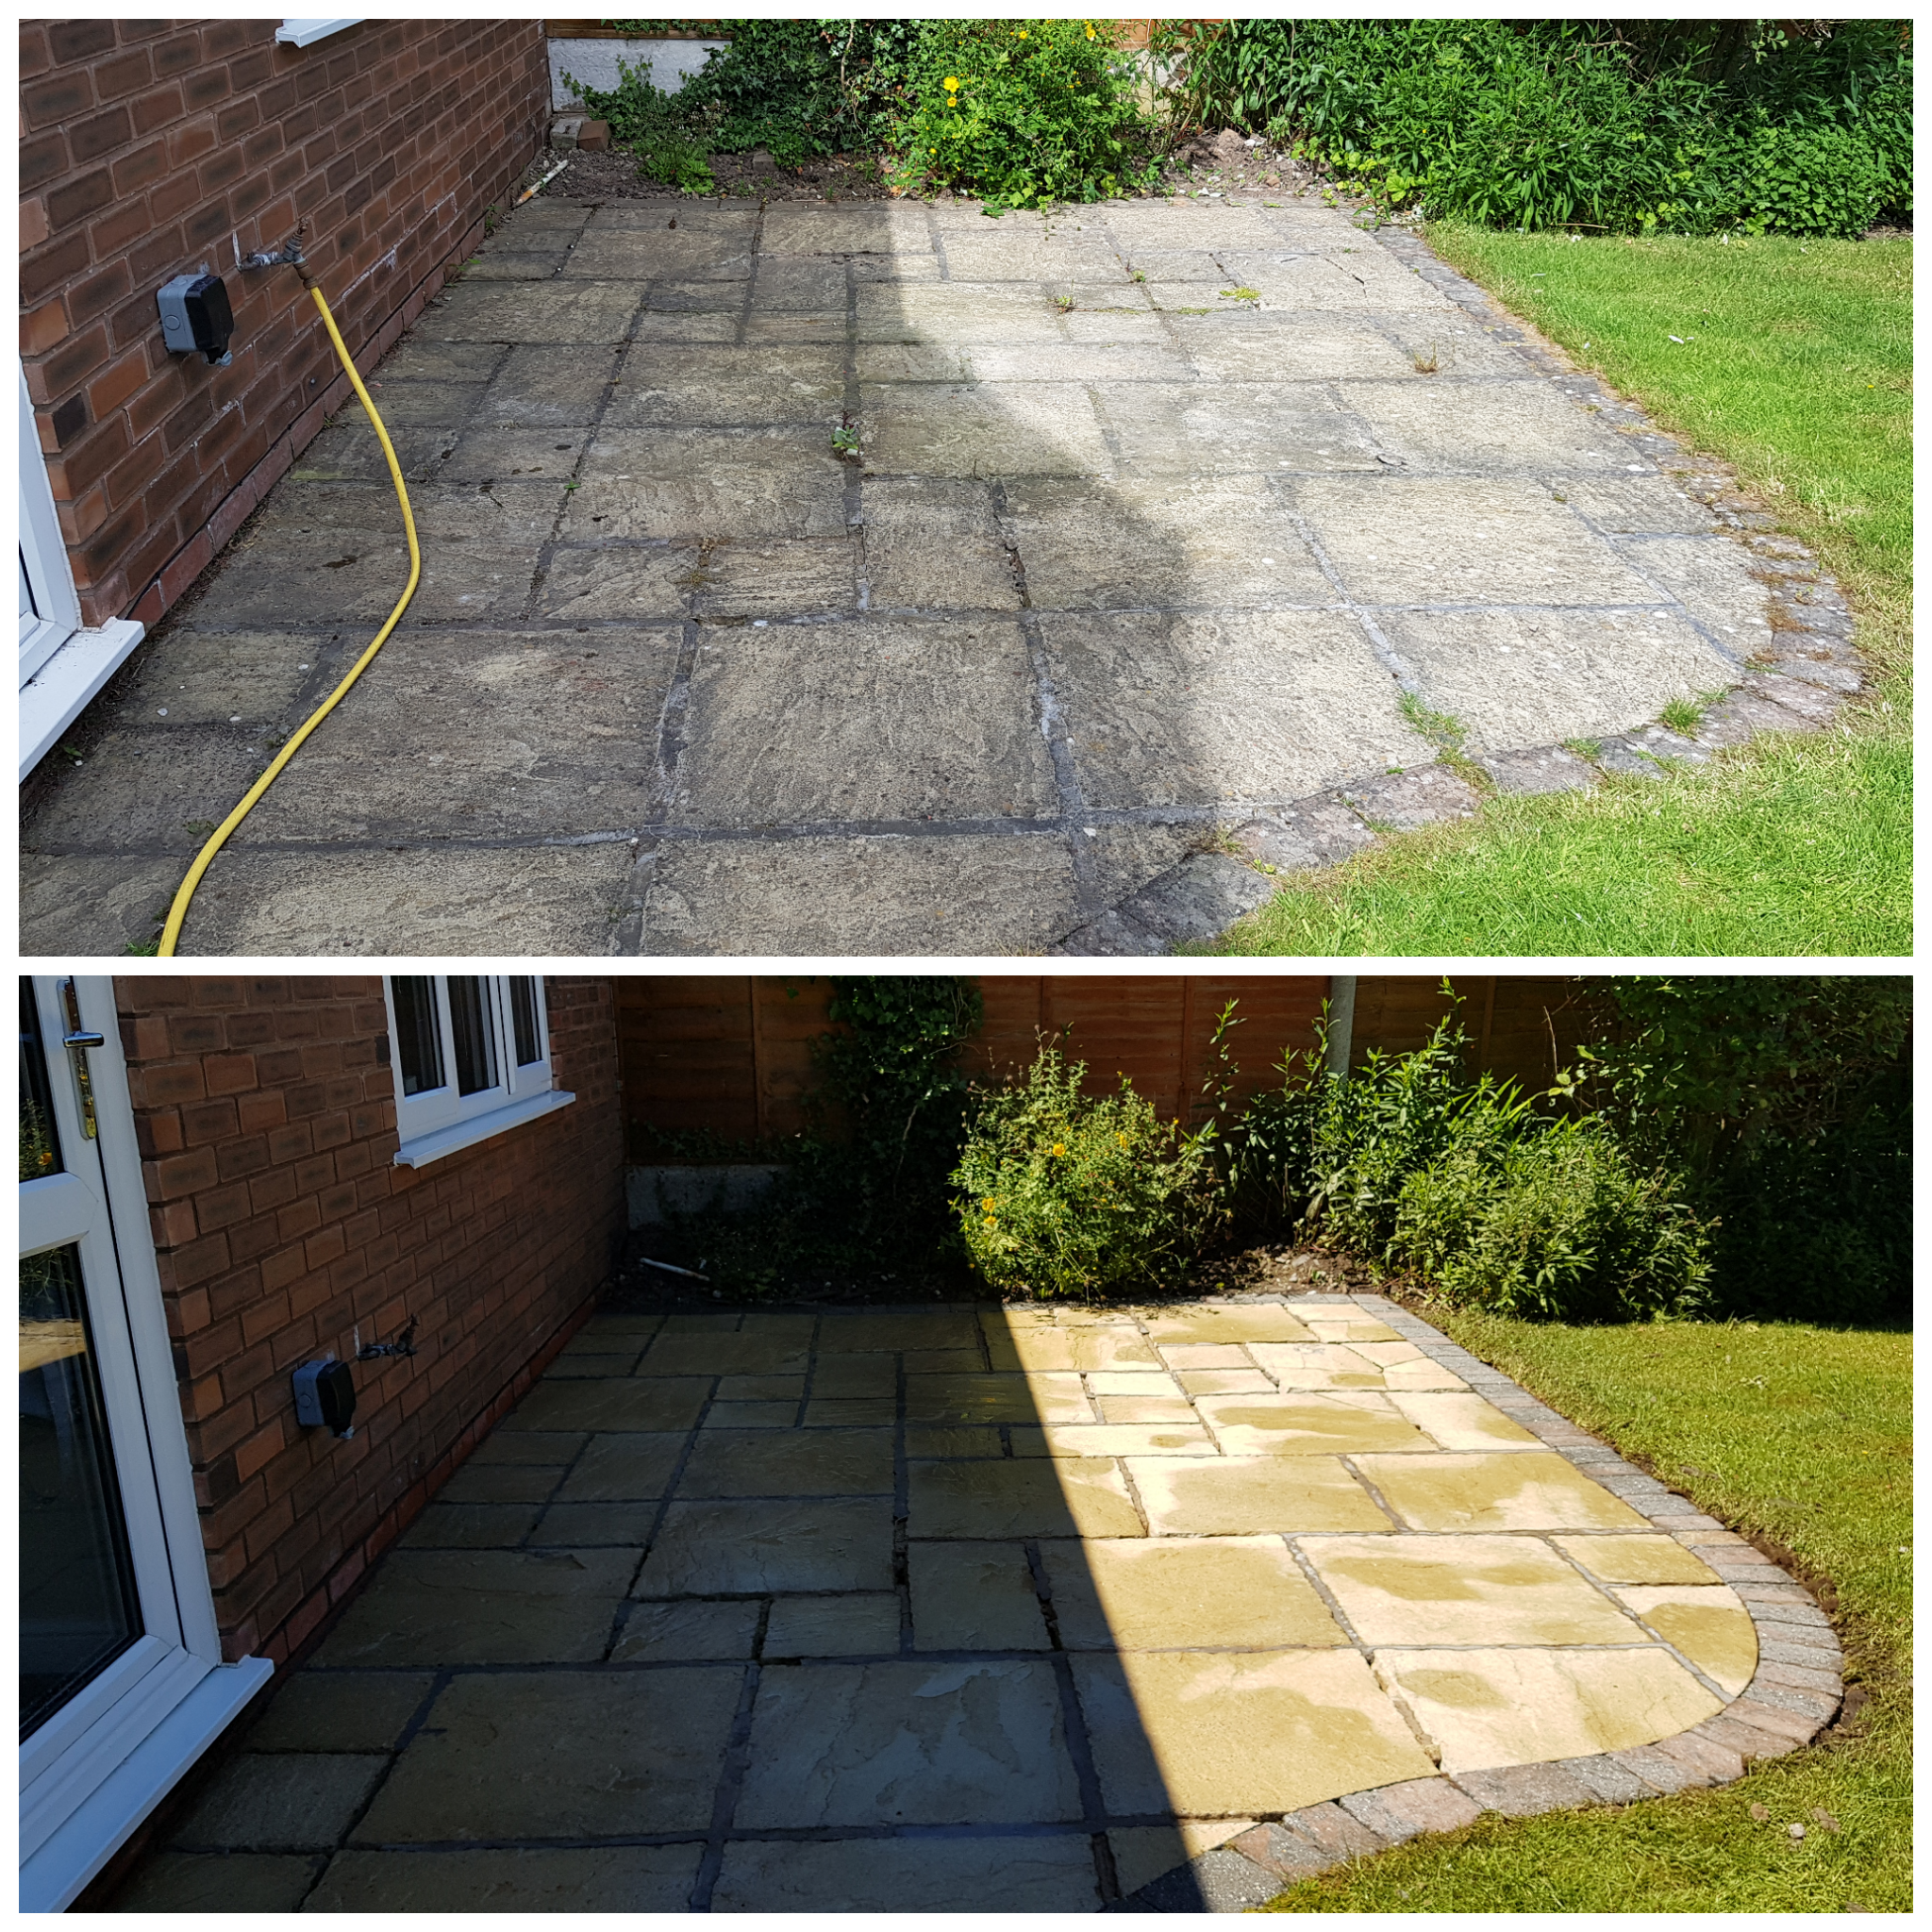 PicsArt_06-22-06.54.29-2 Paving Patio Cleaning - Spital, Wirral